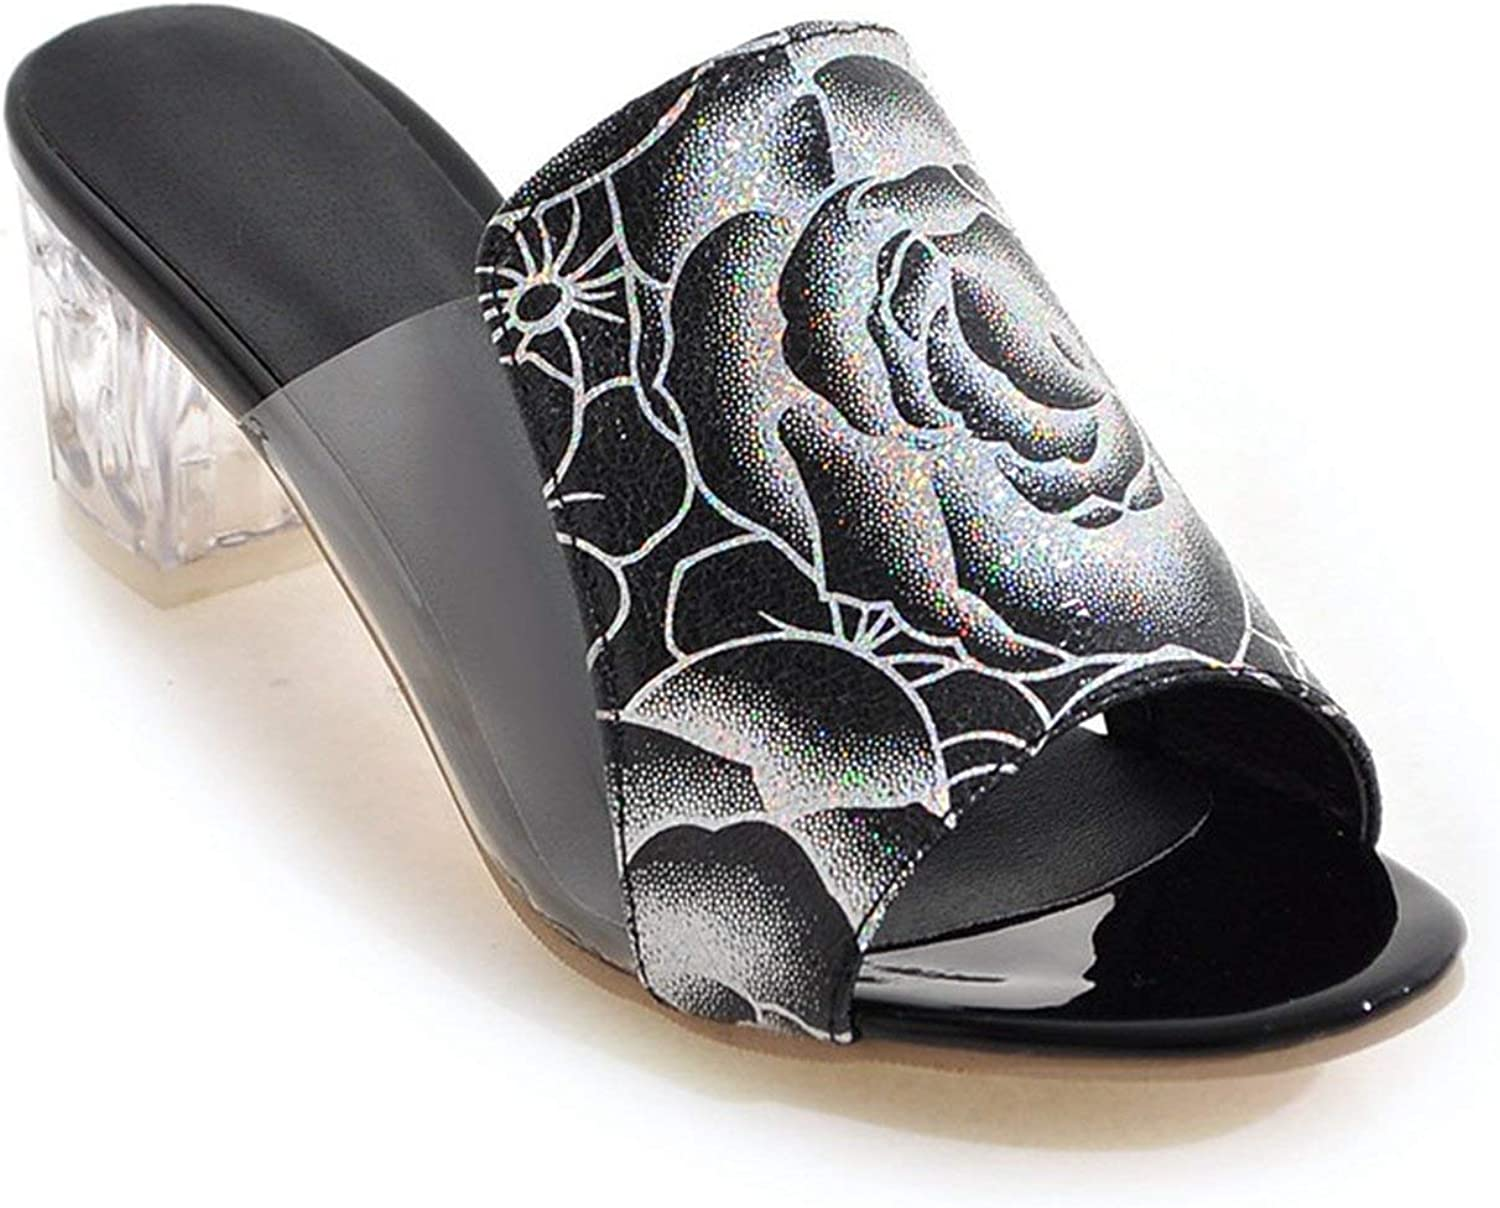 New face 2019 Style Slingback Women Sandals peep Toe Summer shoes Crystal high Heels shoes Ladies Party Prom shoes